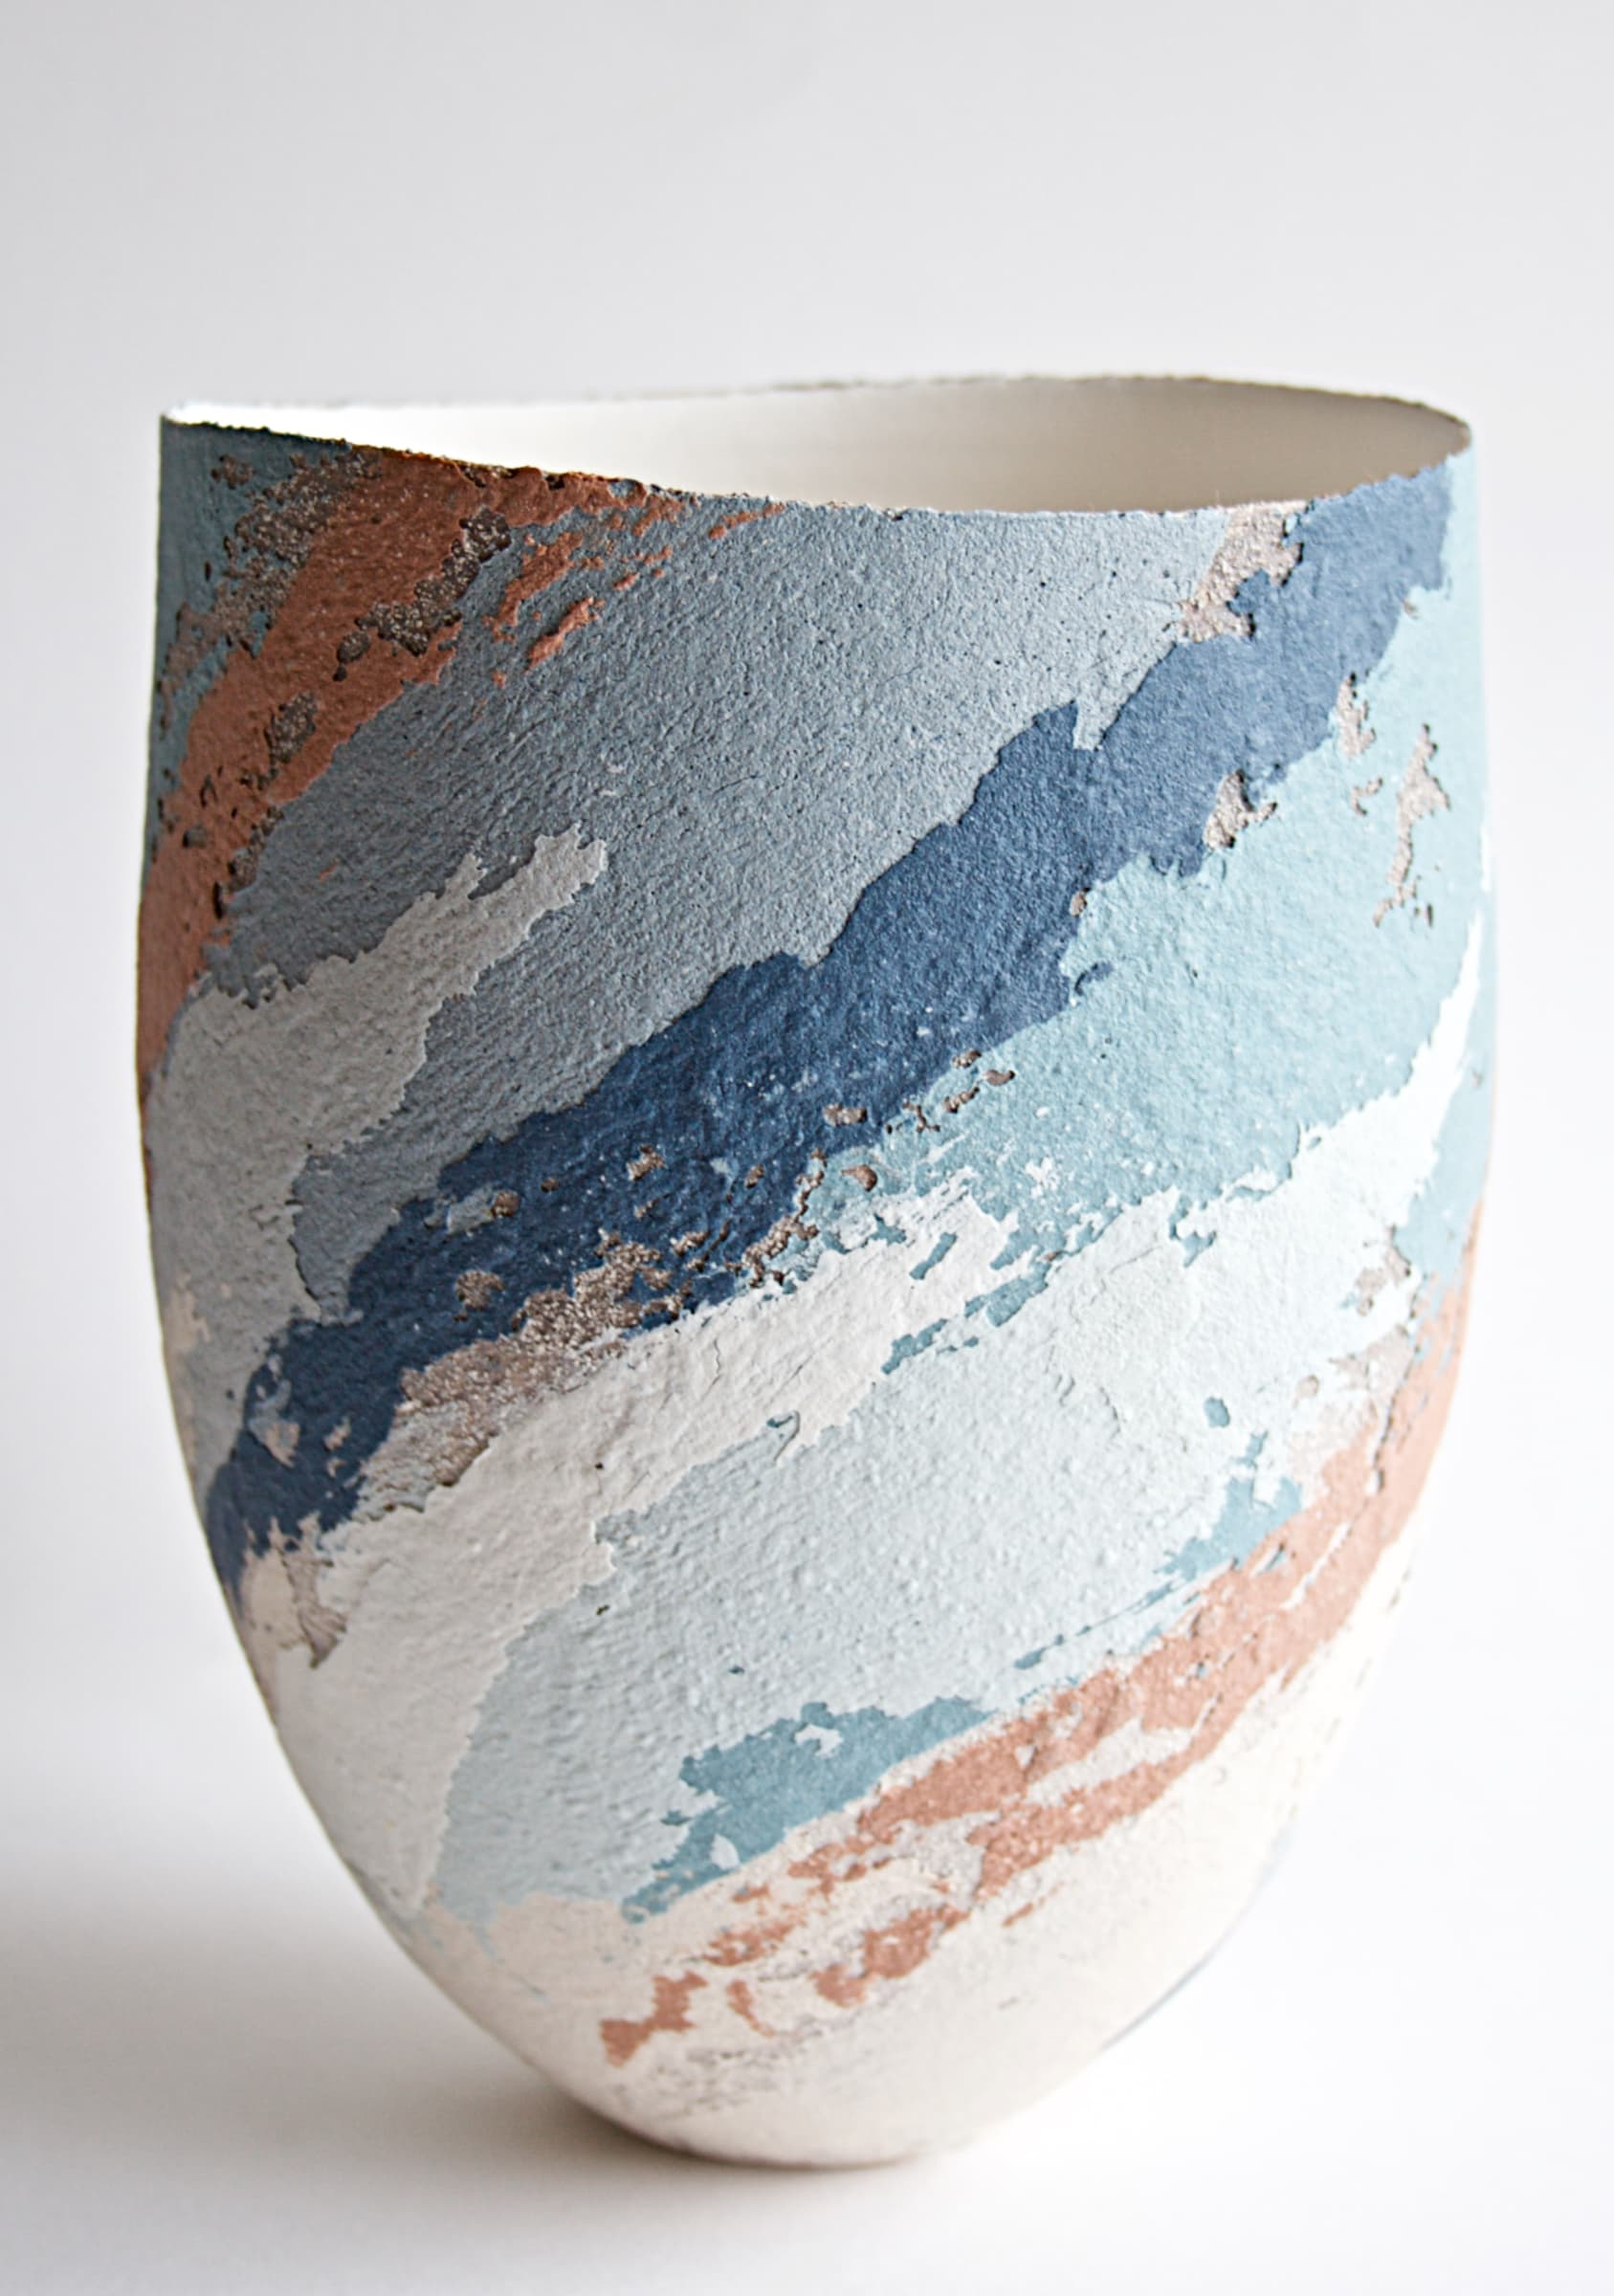 "<span class=""link fancybox-details-link""><a href=""/artists/79-clare-conrad/works/6925-clare-conrad-vessel-scooped-rim-2020/"">View Detail Page</a></span><div class=""artist""><strong>Clare Conrad</strong></div> b. 1948 <div class=""title""><em>Vessel, scooped rim</em>, 2020</div> <div class=""medium"">Stoneware</div> <div class=""dimensions"">h. 20 cm</div><div class=""price"">£330.00</div><div class=""copyright_line"">Copyright The Artist</div>"